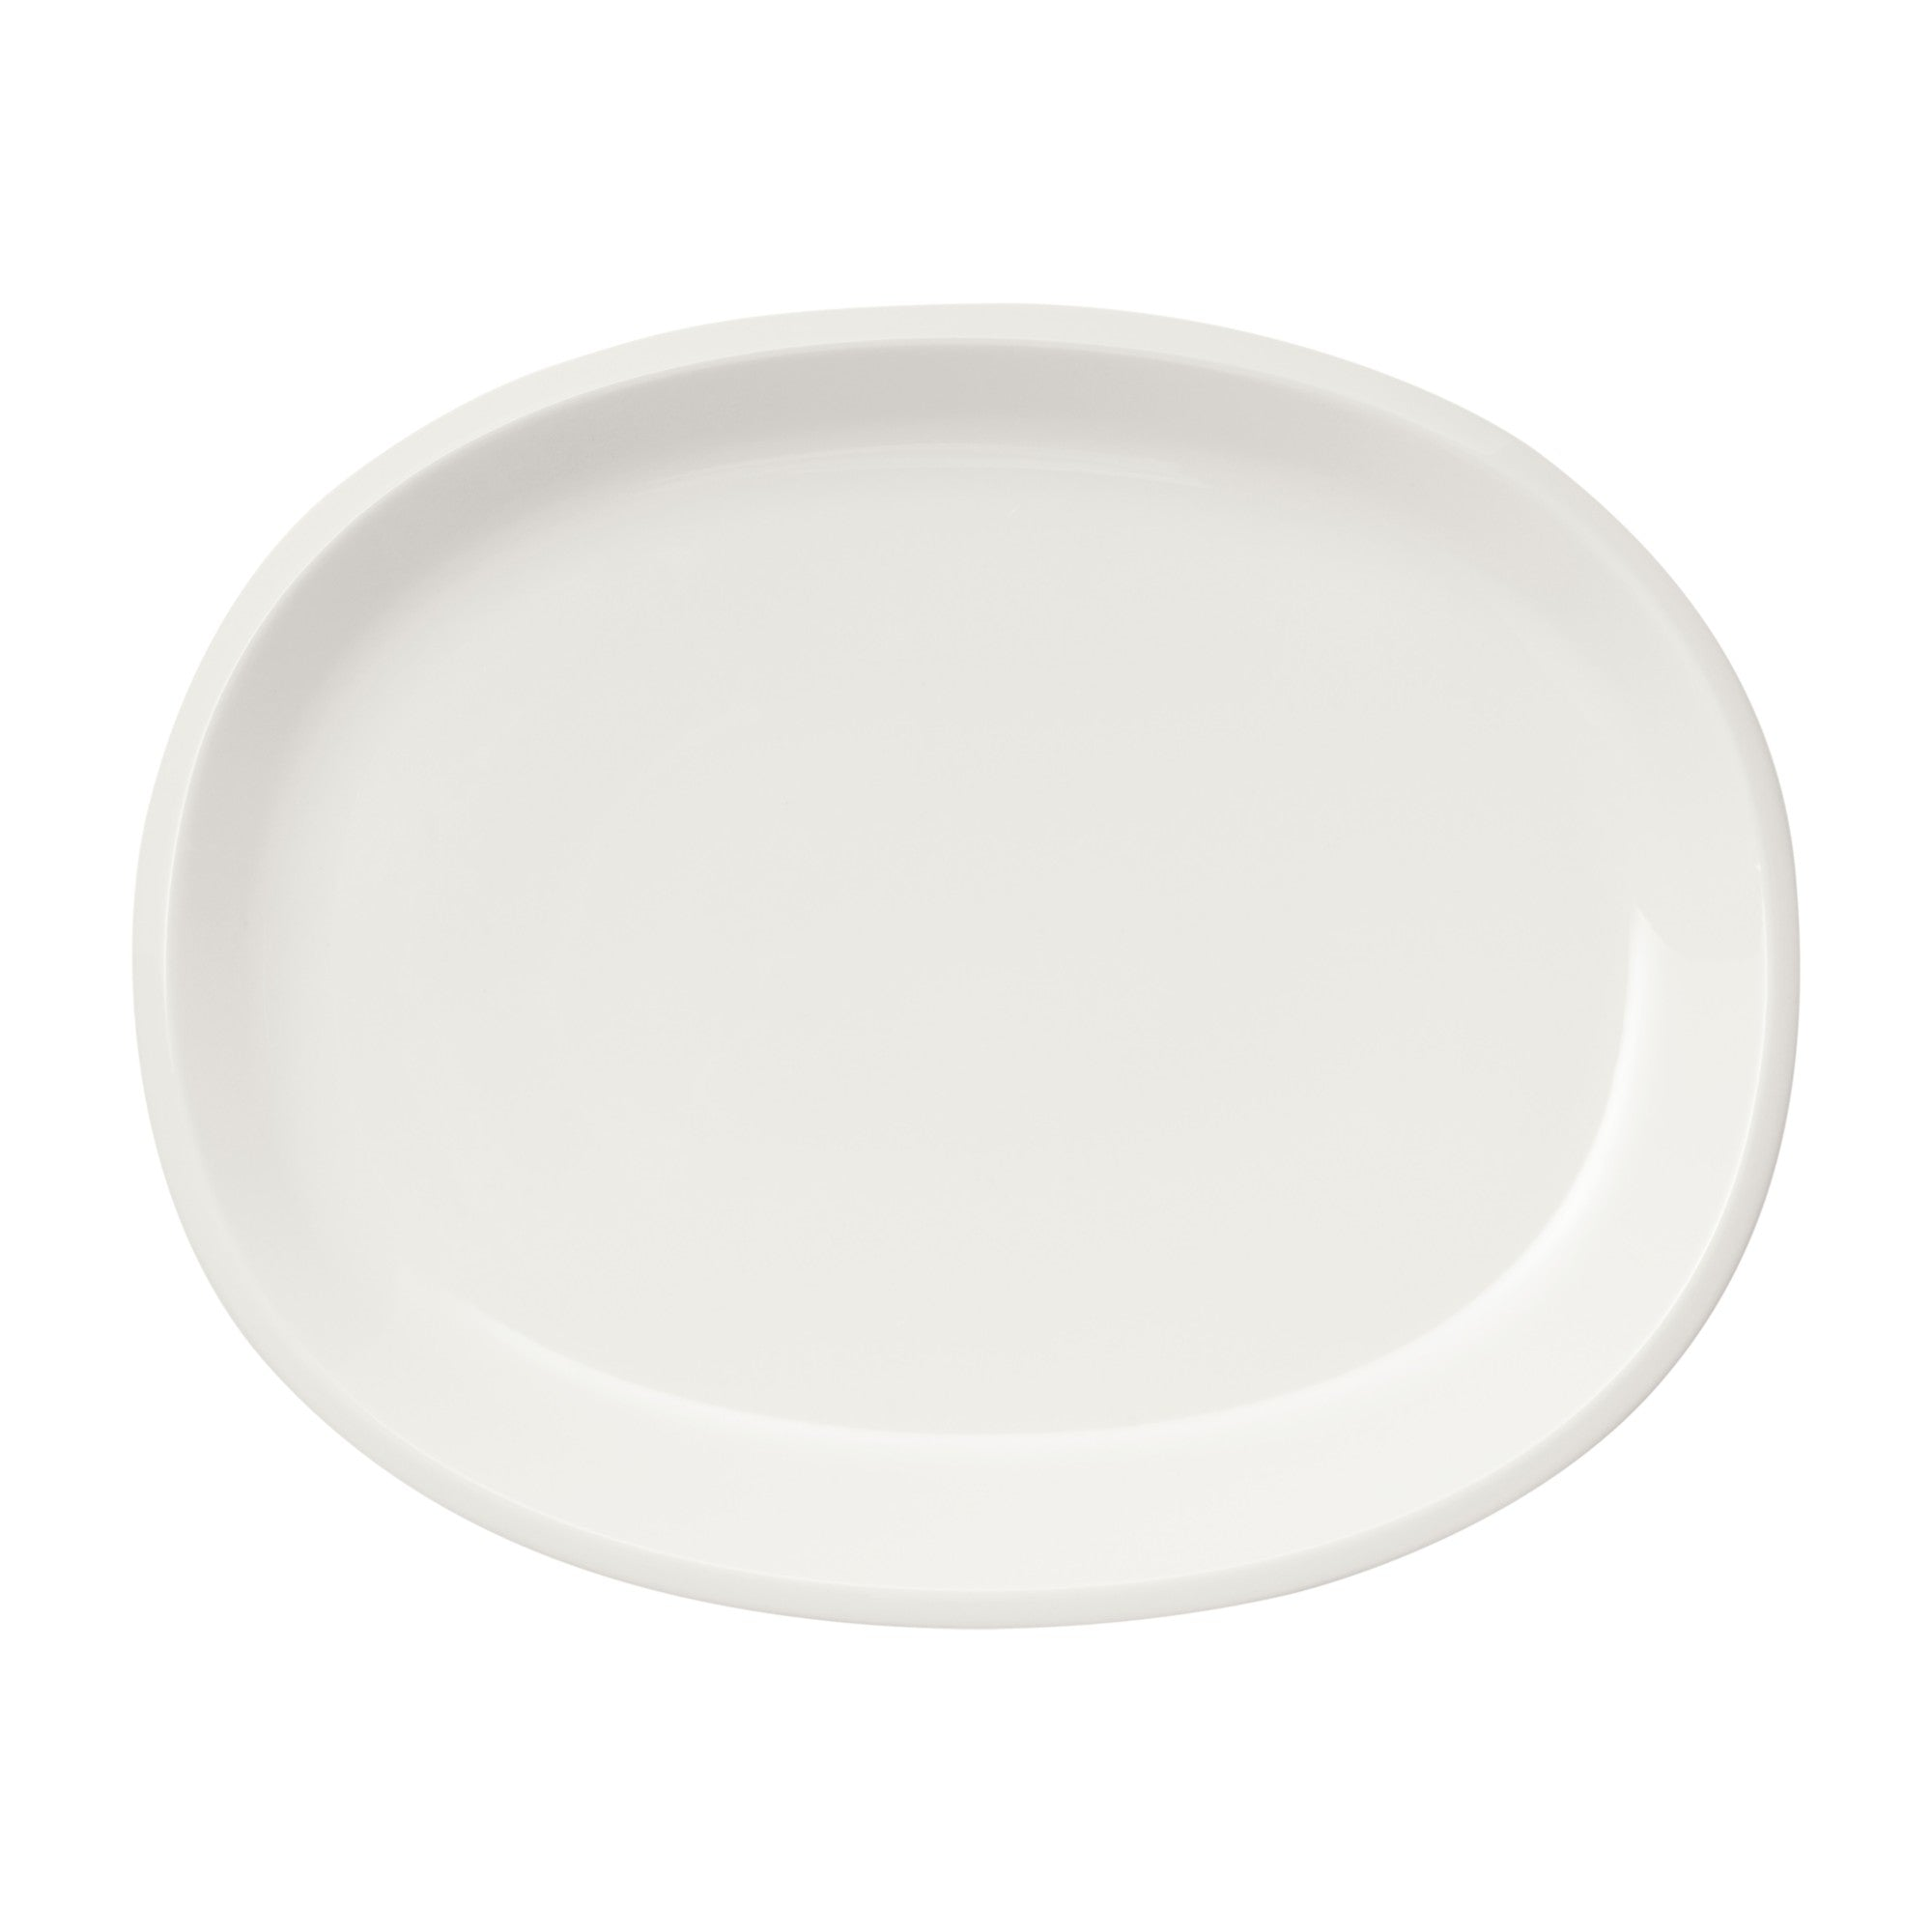 Raami Serving platter oval